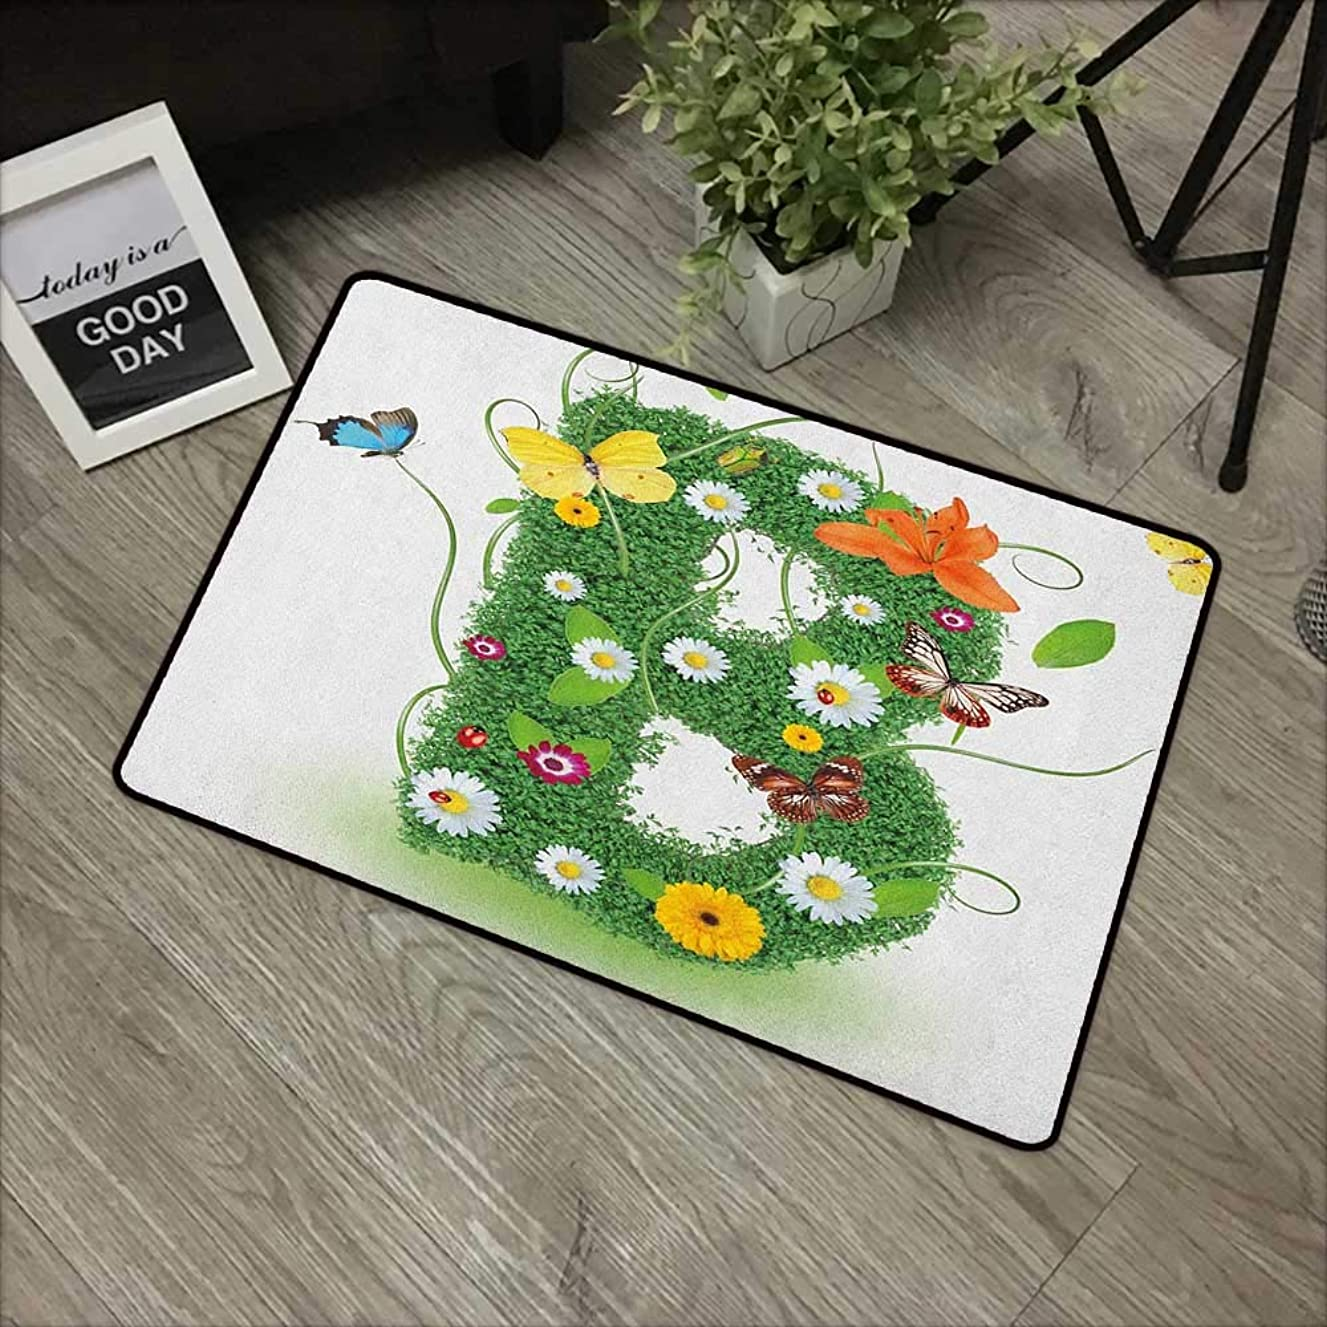 Learning pad W24 x L35 INCH Letter B,Uppercase B Sign with Flourishing Daisies Exotic Garden Plants Butterflies Fresh, Multicolor Non-Slip Door Mat Carpet